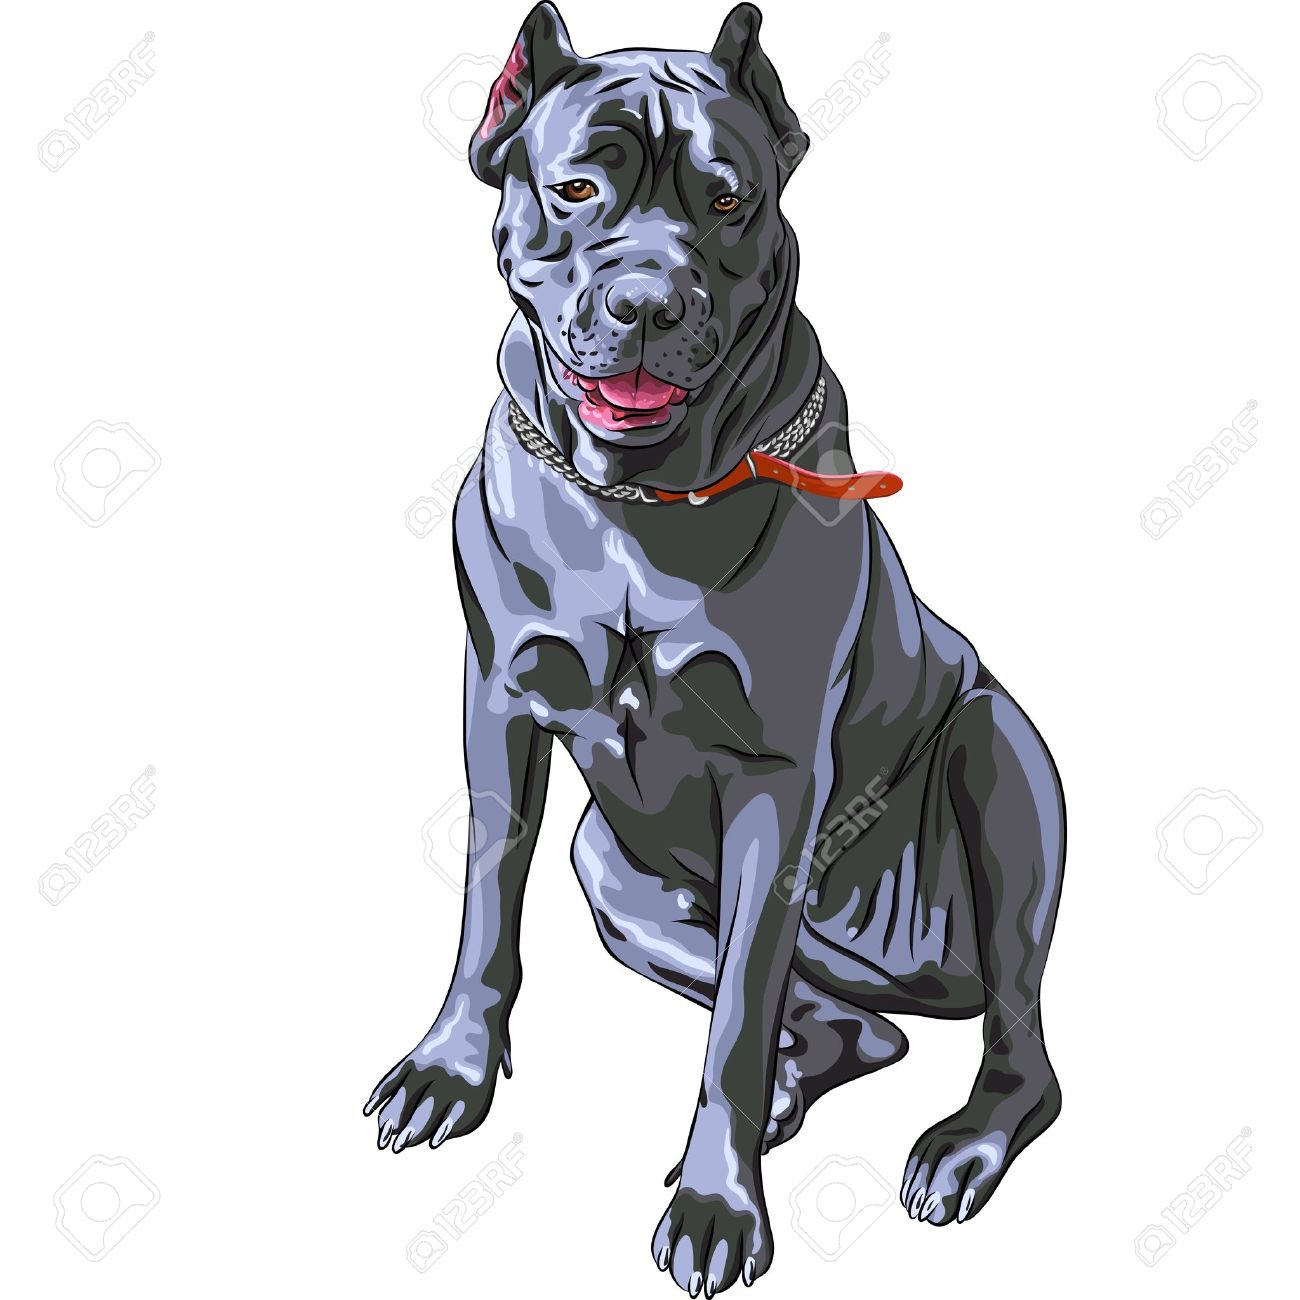 sketch of the dog black Cane Corso breed, large Italian Molosser,  sitting Stock Vector - 15563954